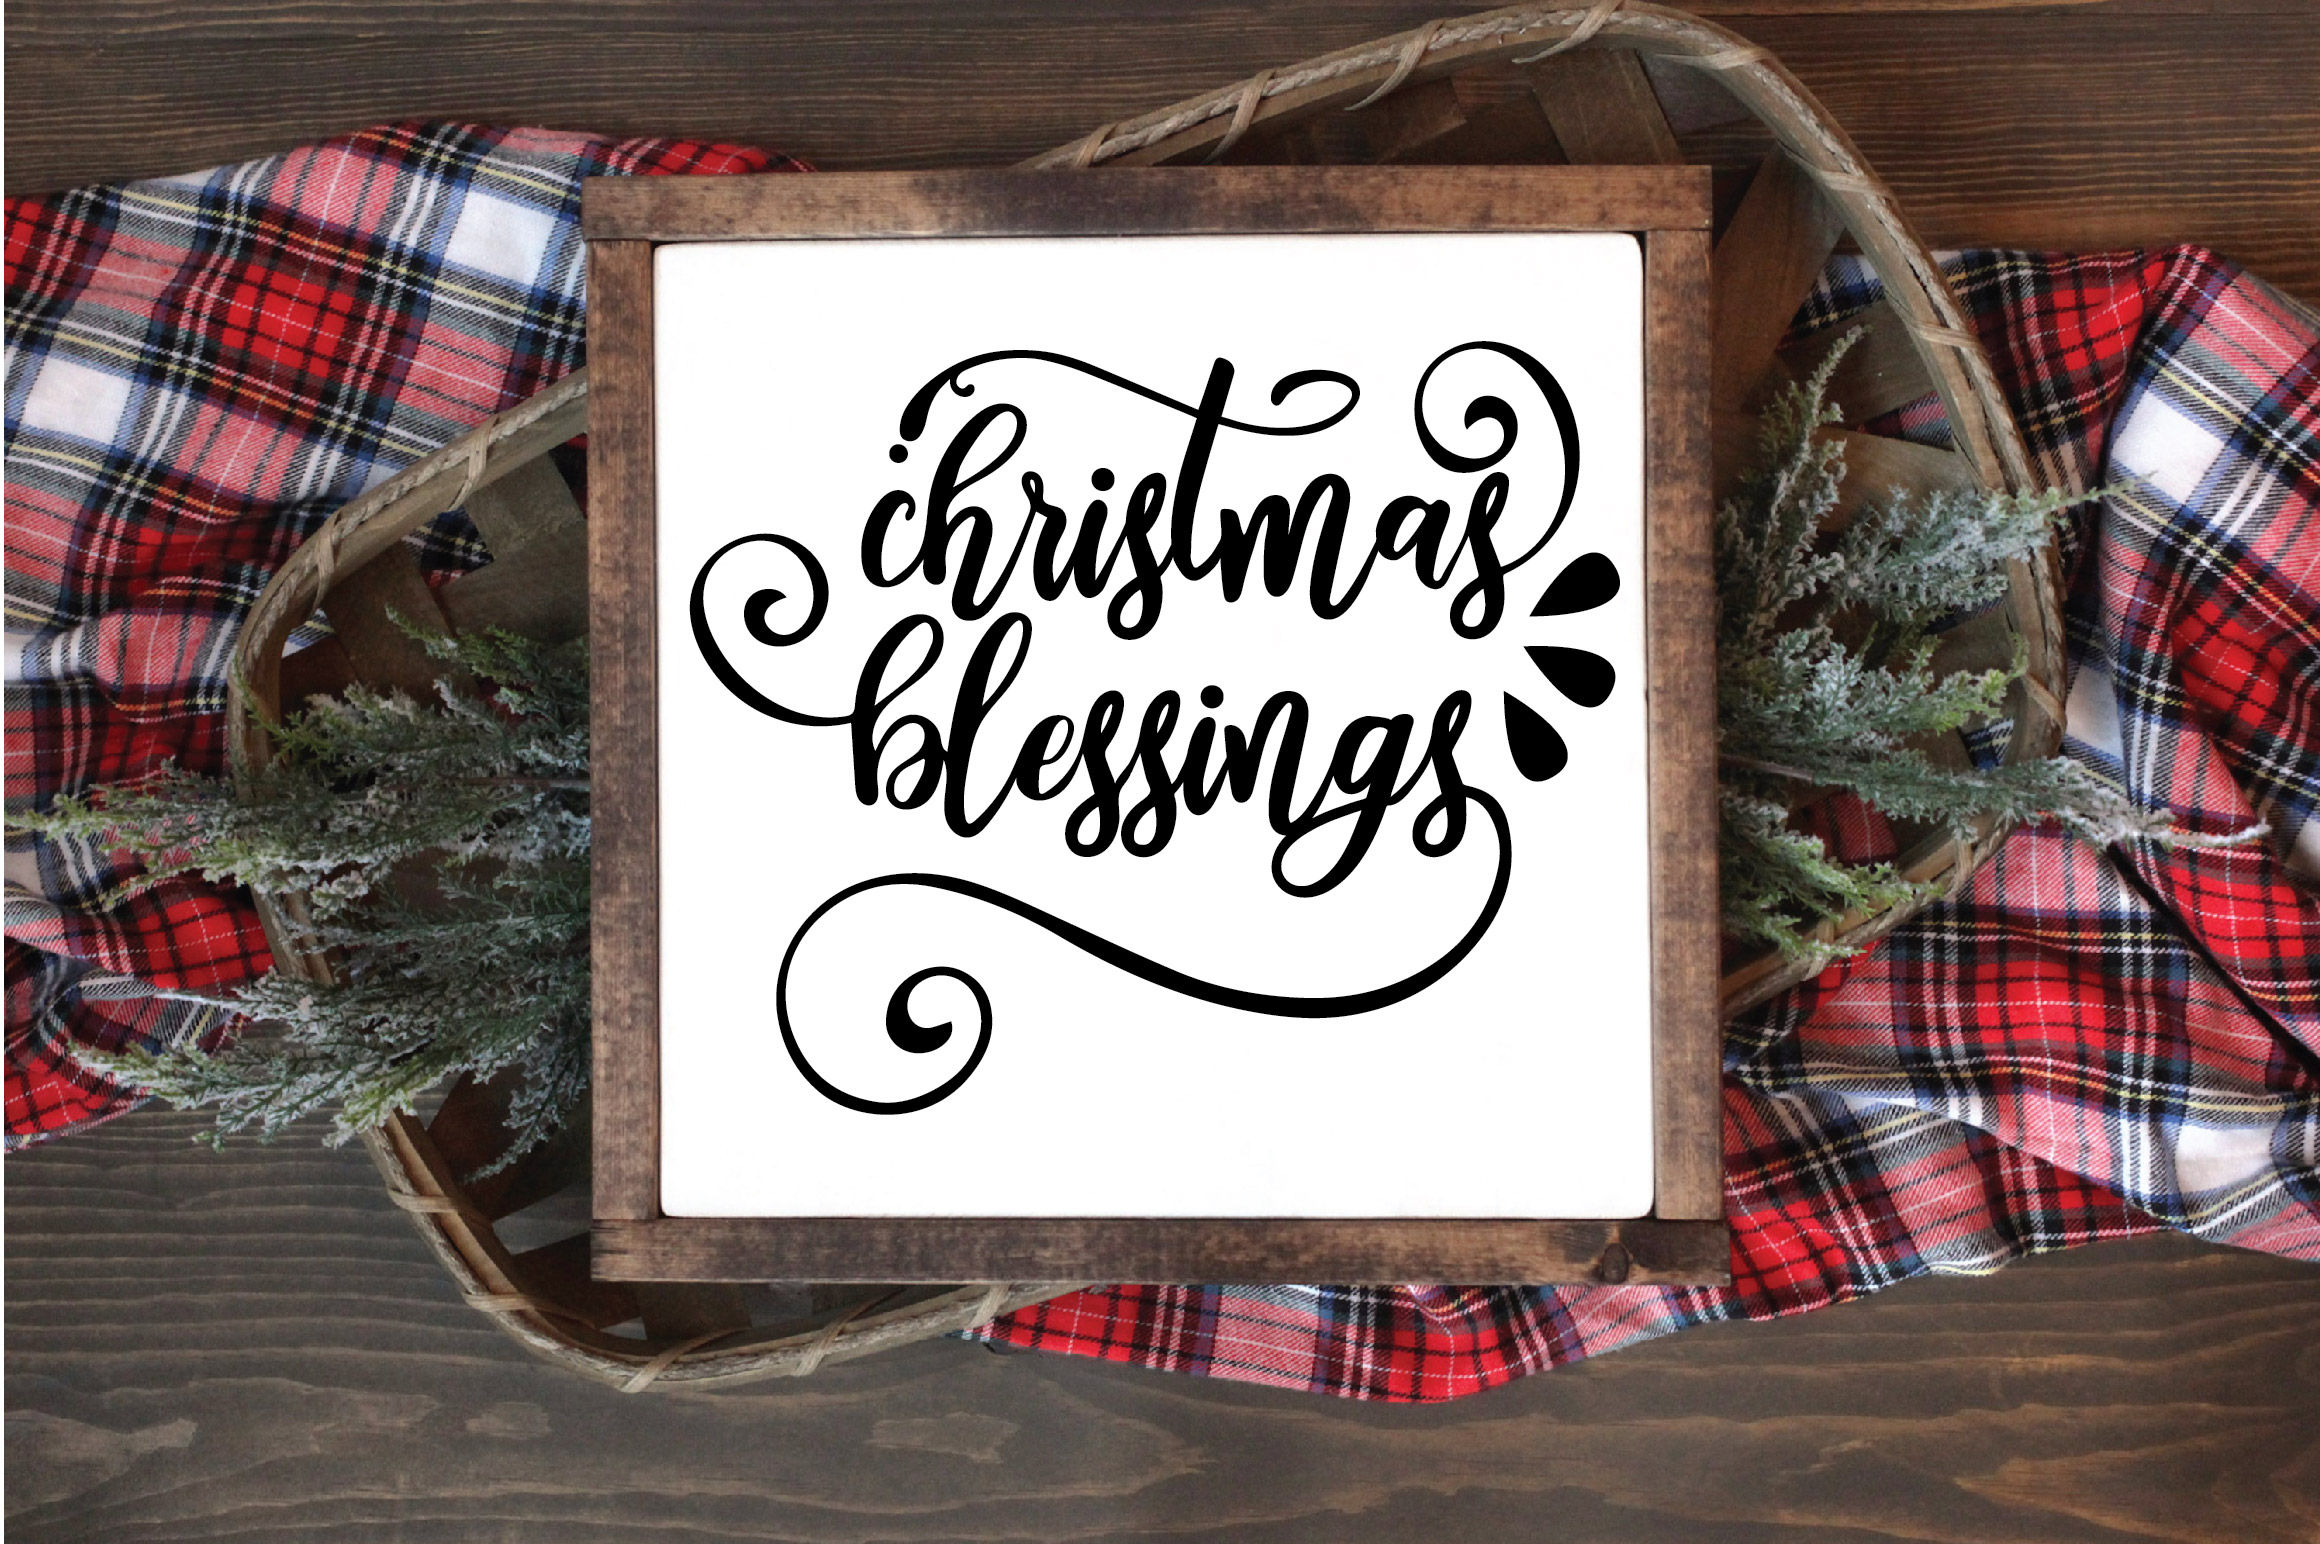 Christmas SVG Cut File - Christmas Blessings SVG DXF PNG EPS example image 2